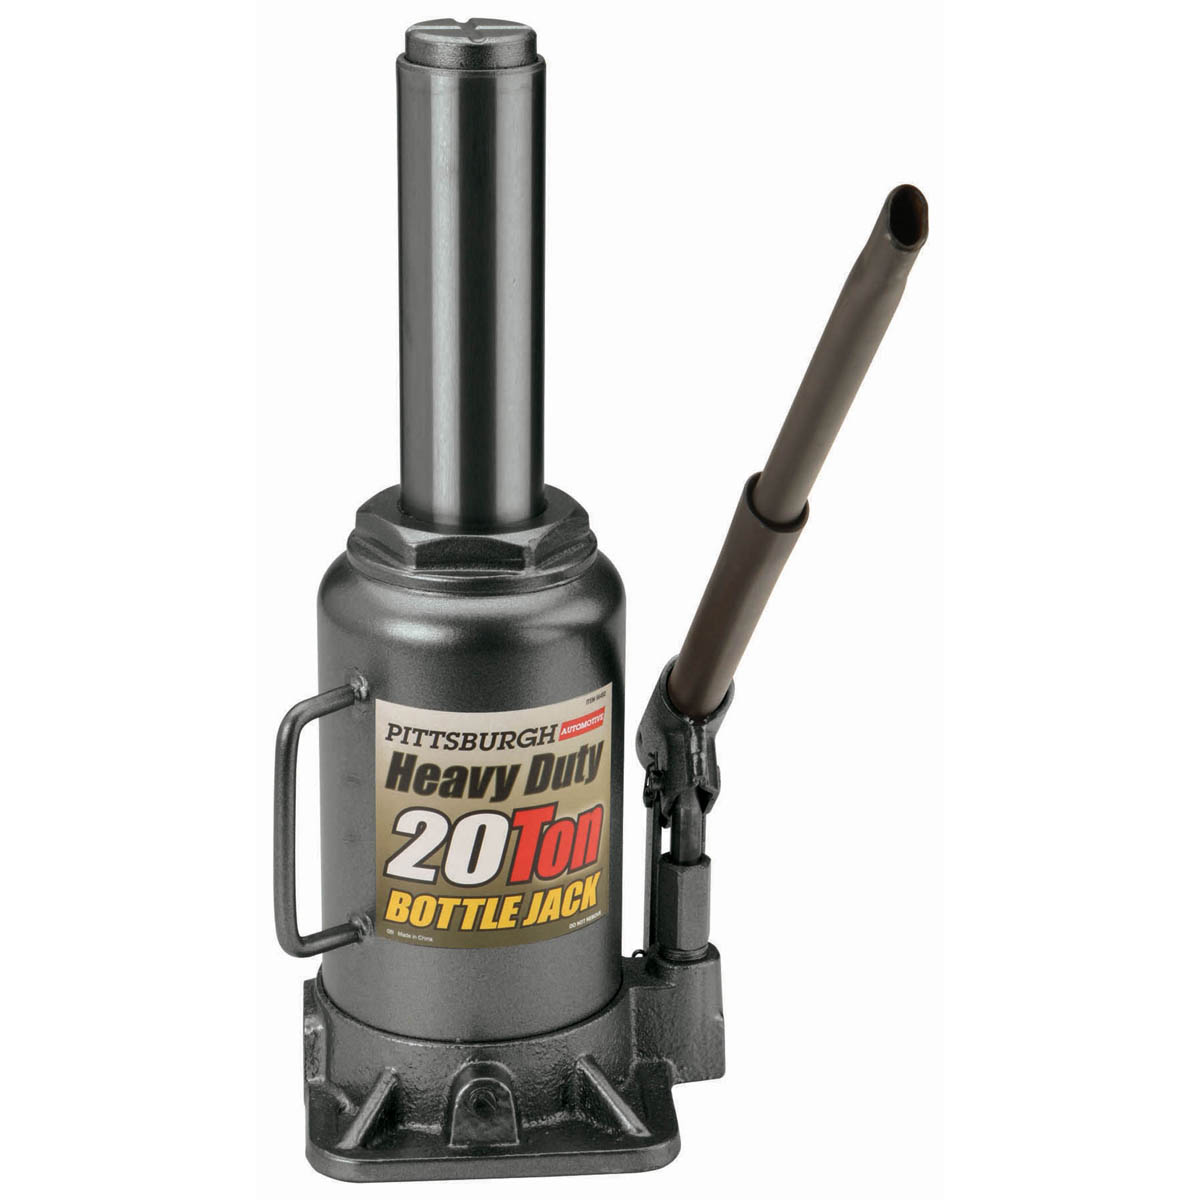 20 Ton Hydraulic Heavy Duty Bottle Jack